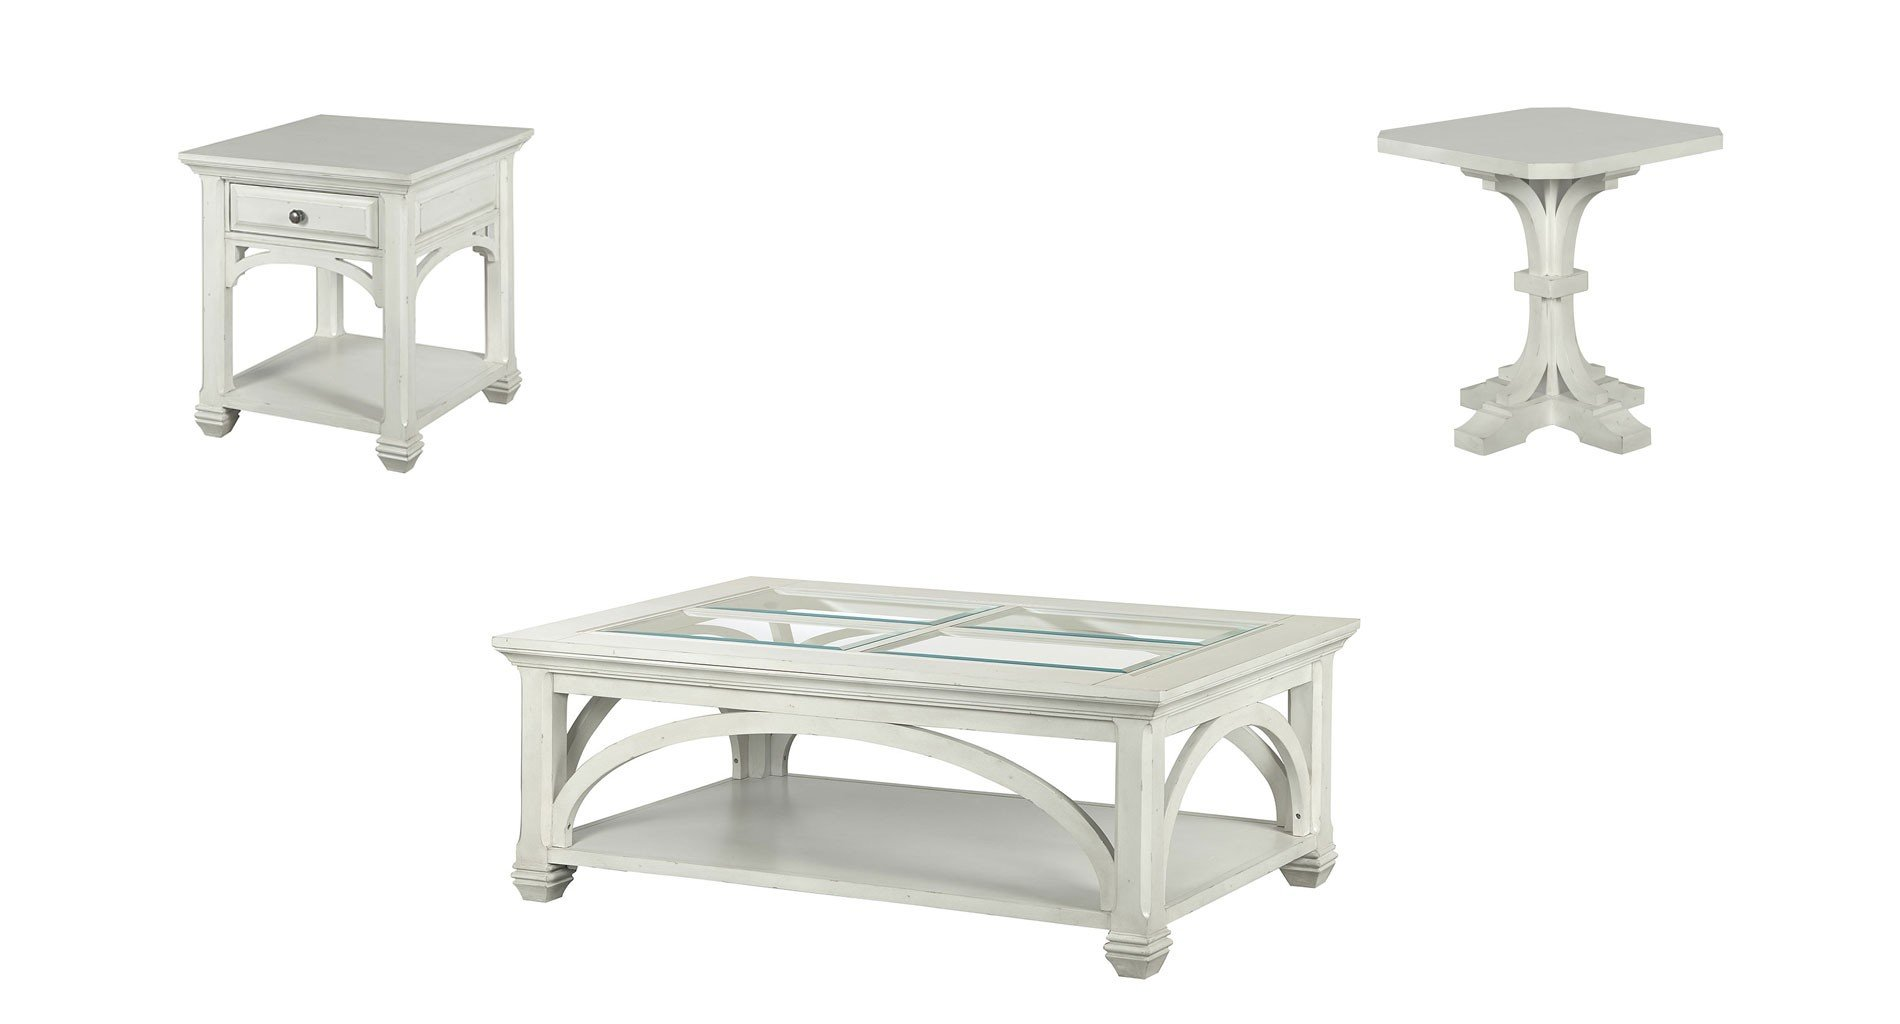 Superb Hancock Park Occasional Table Set Gamerscity Chair Design For Home Gamerscityorg